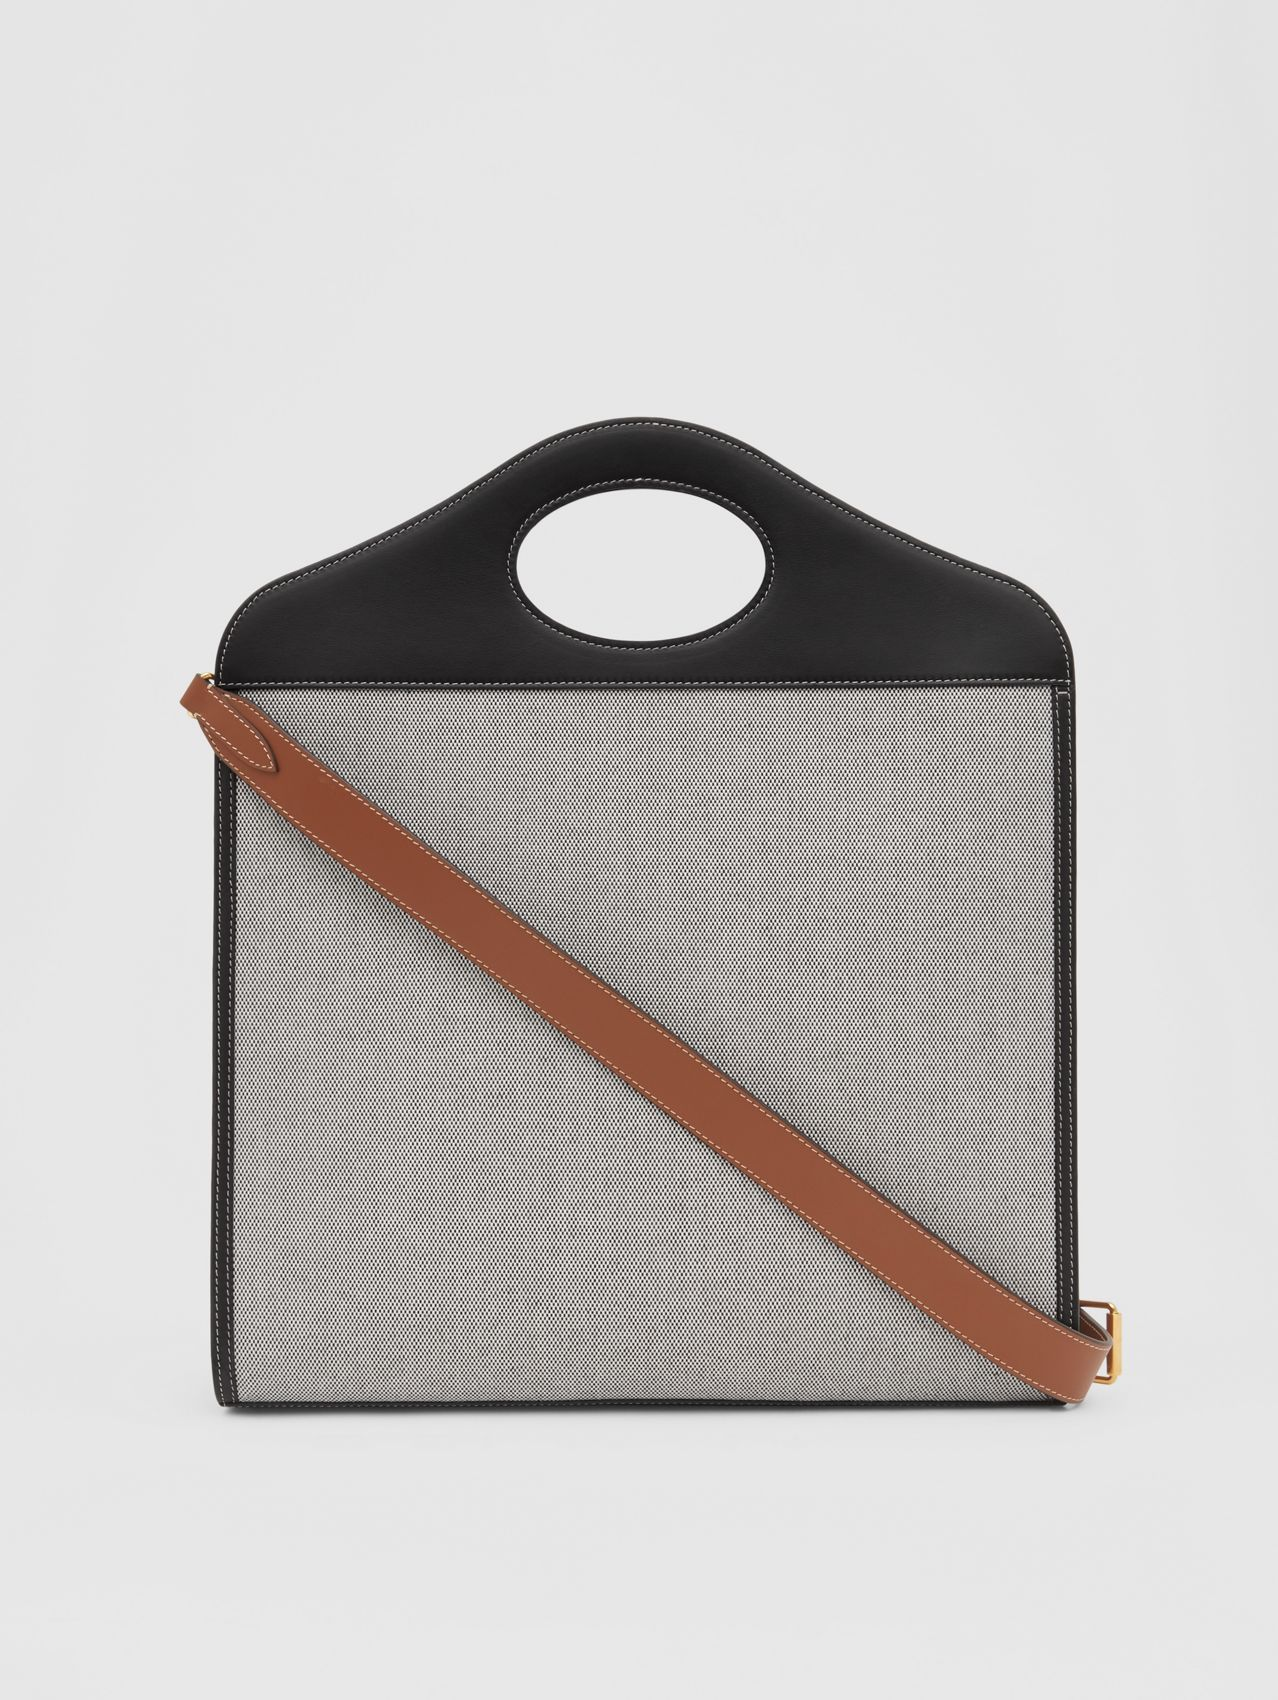 Medium Two-tone Canvas and Leather Pocket Bag in Black/tan